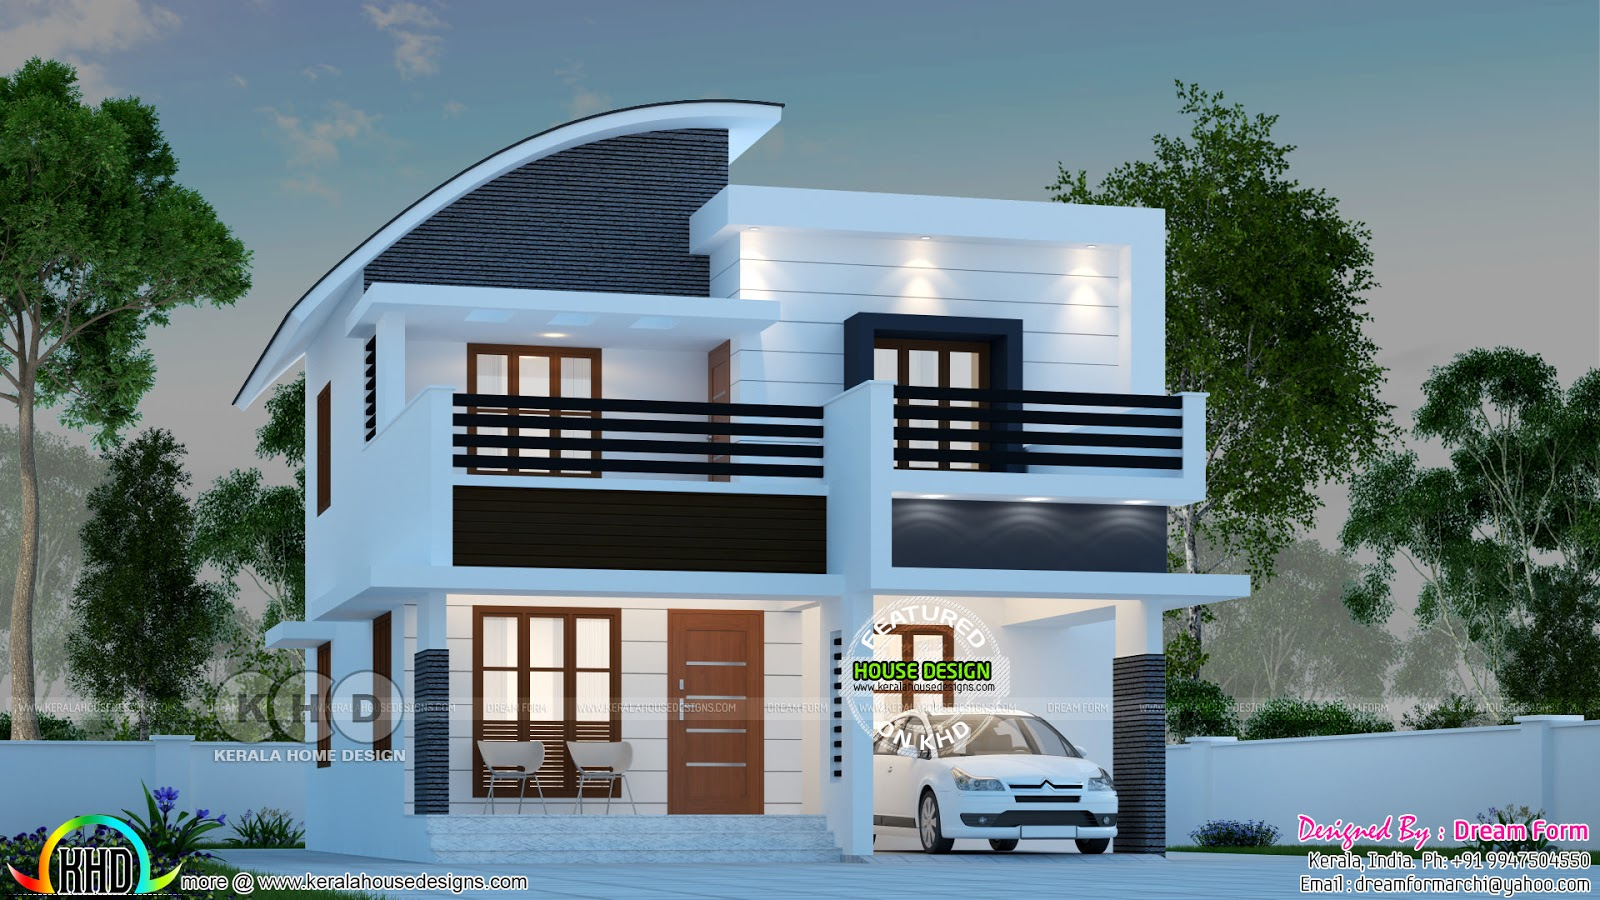 Superb Modern 1600 Sq Ft 3 Bedroom Home Kerala Home Design And Floor Plans 8000 Houses